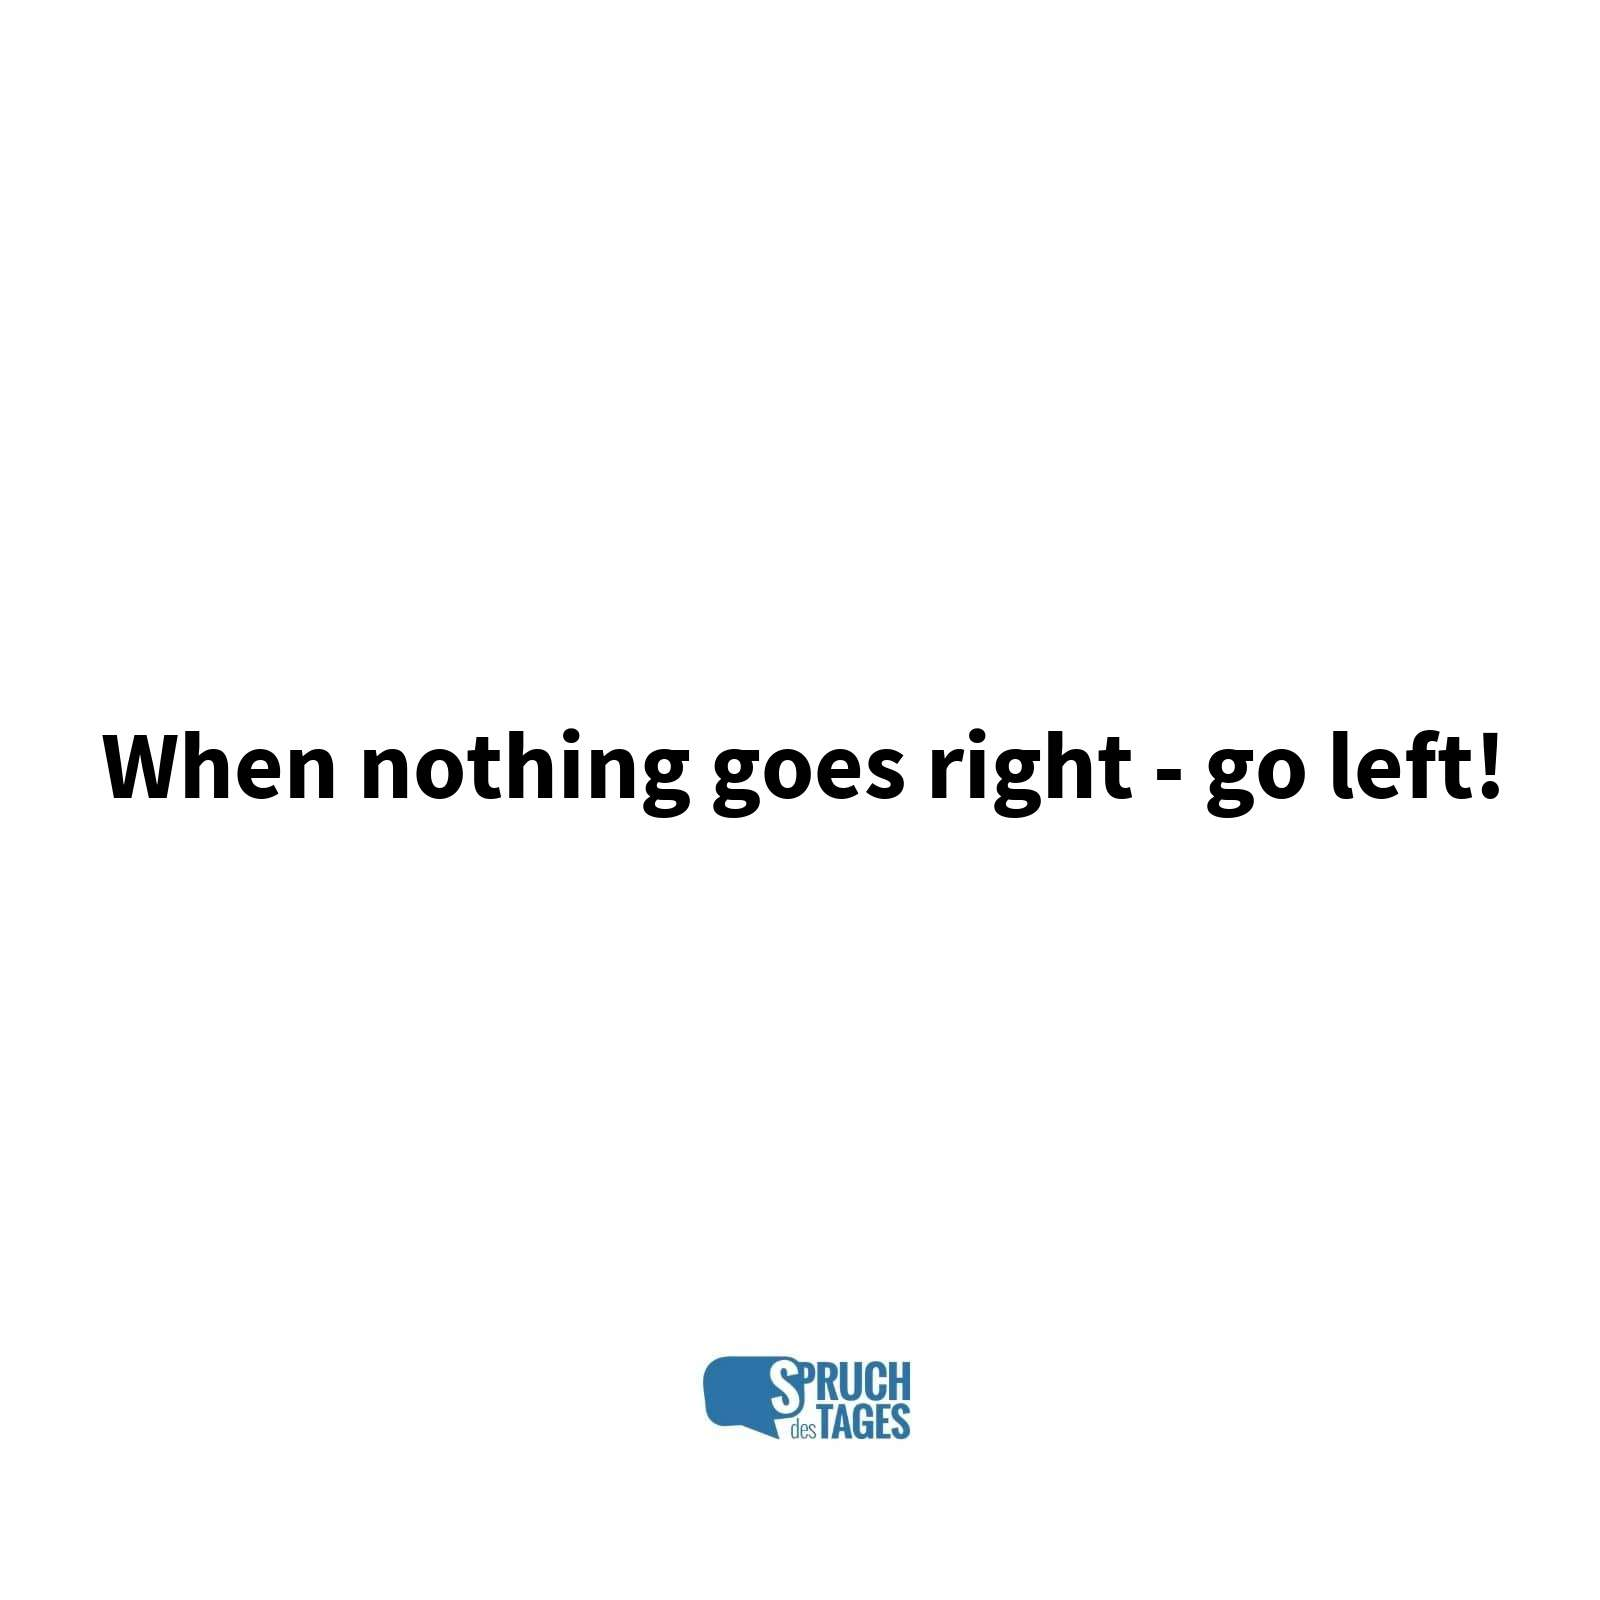 sprüche facebook englisch When nothing goes right   go left! sprüche facebook englisch